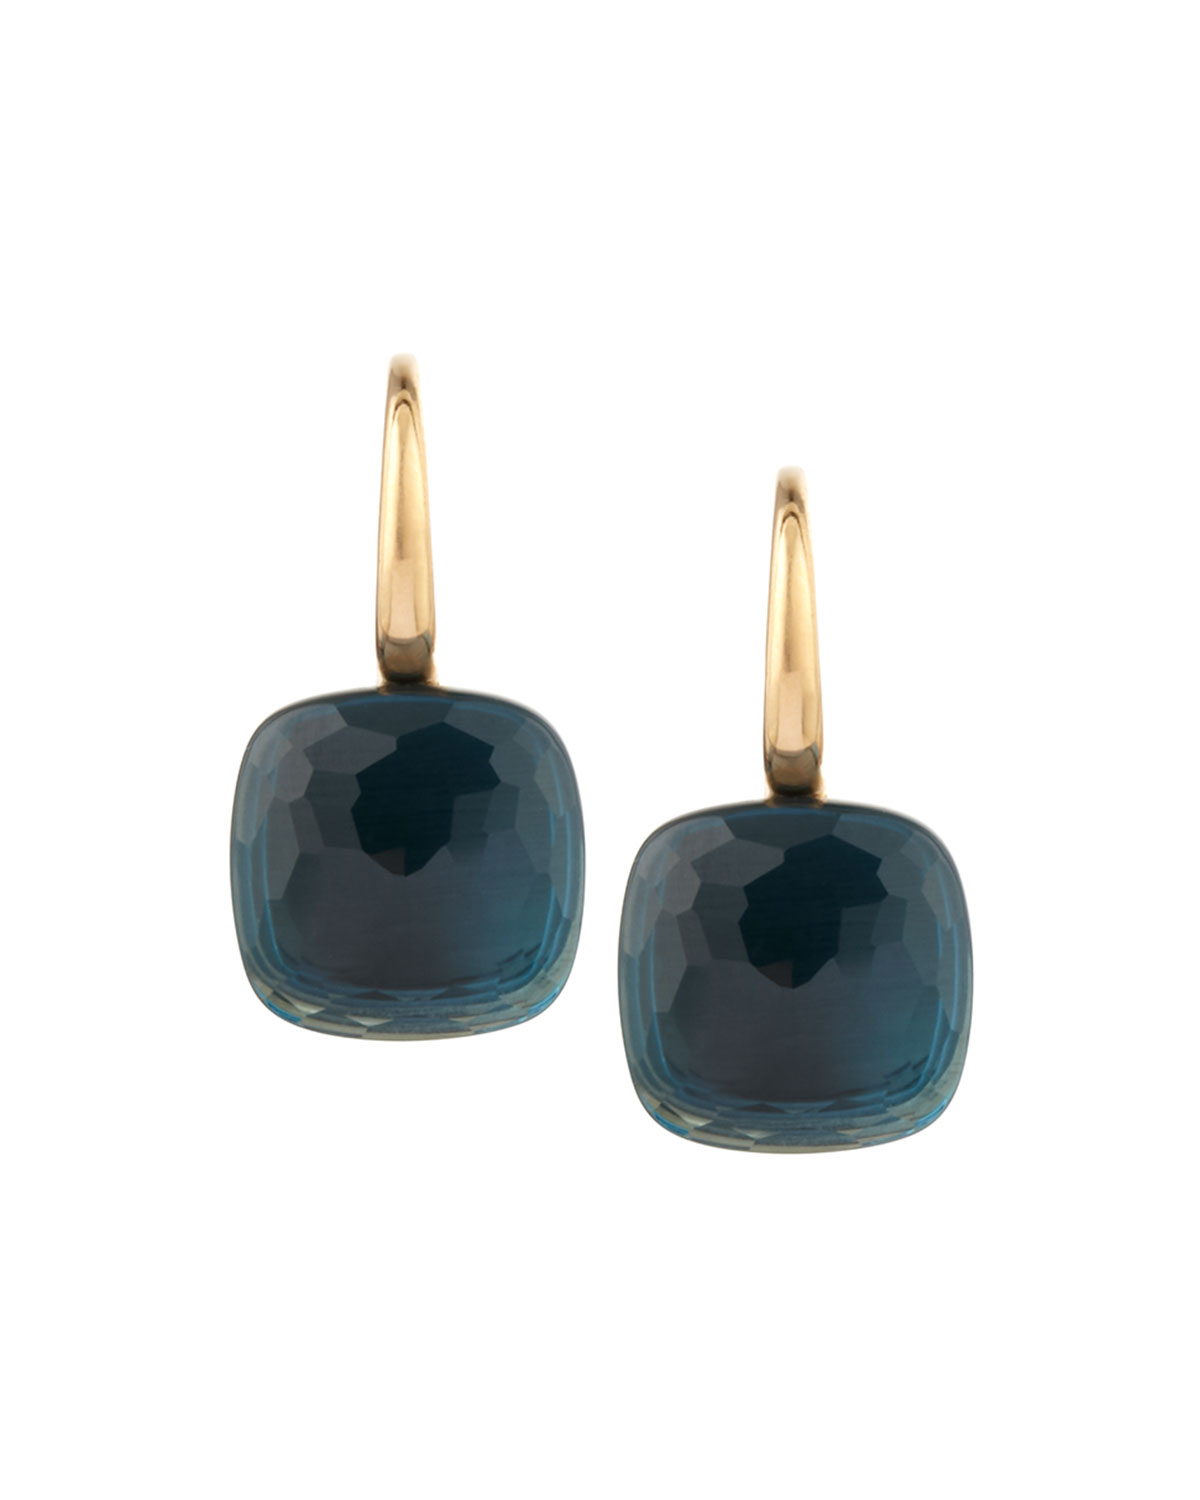 Pomellato Nudo 18k London Blue Topaz Earrings